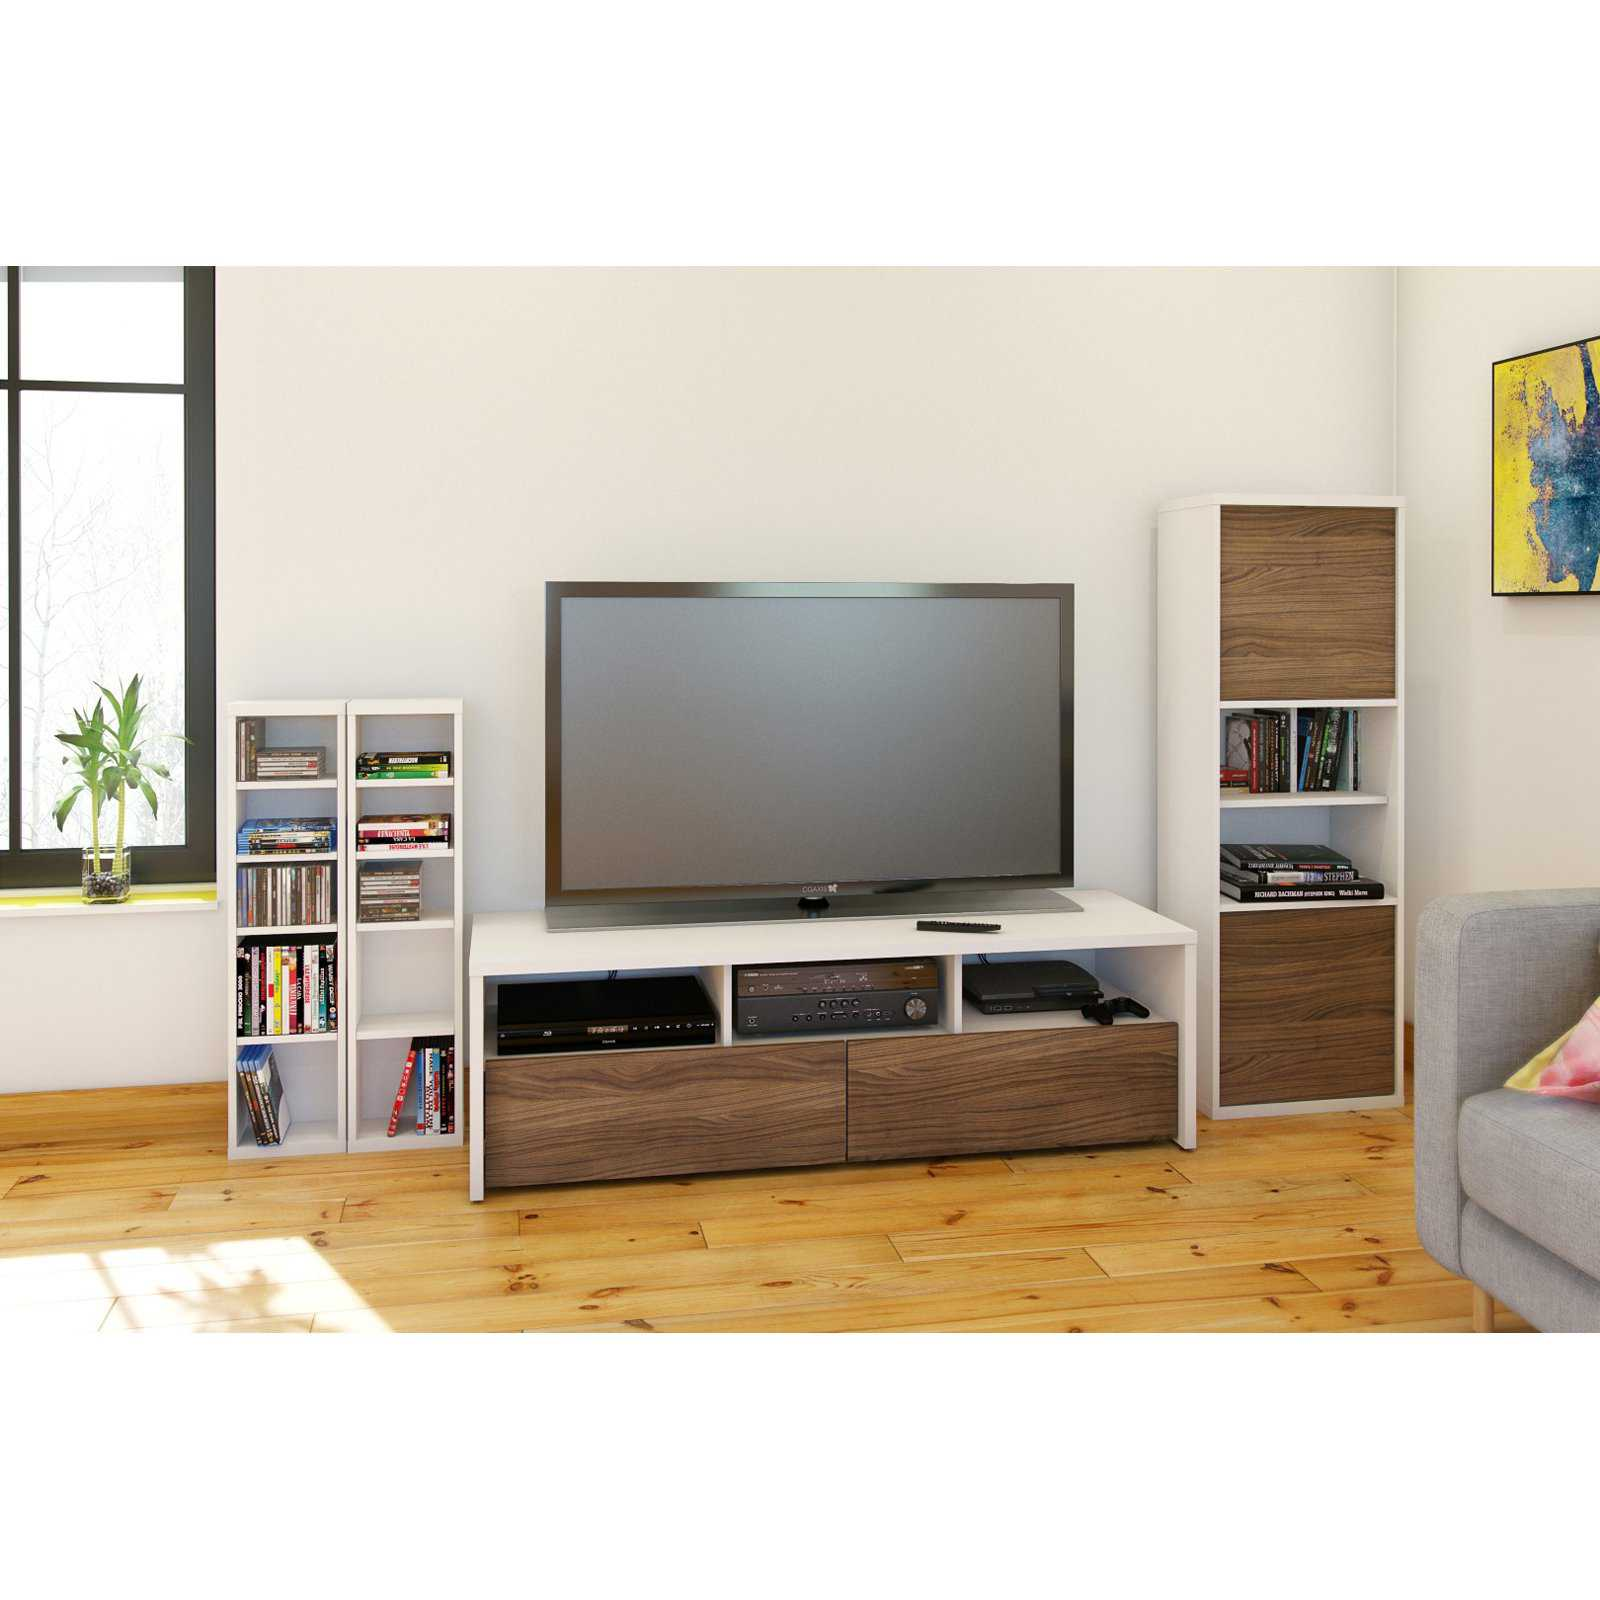 Liber-T White/Walnut TV Stand, for TVs up to 60'